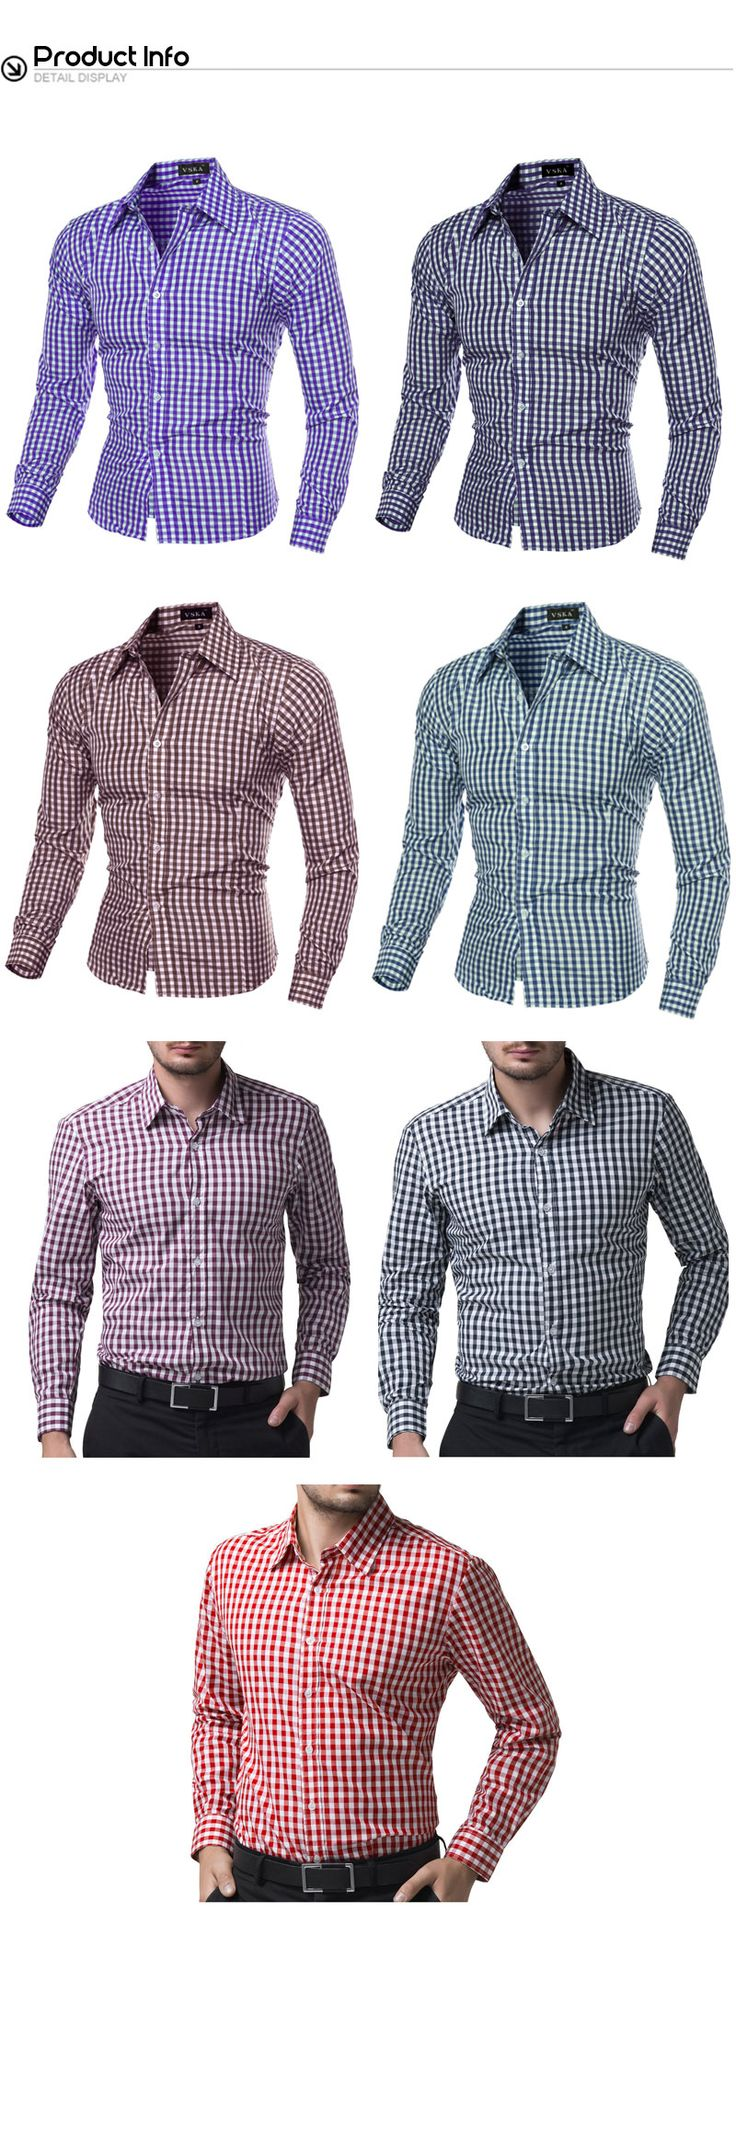 CIC Collection Mens Cotton Casual Plaid Dress Shirts